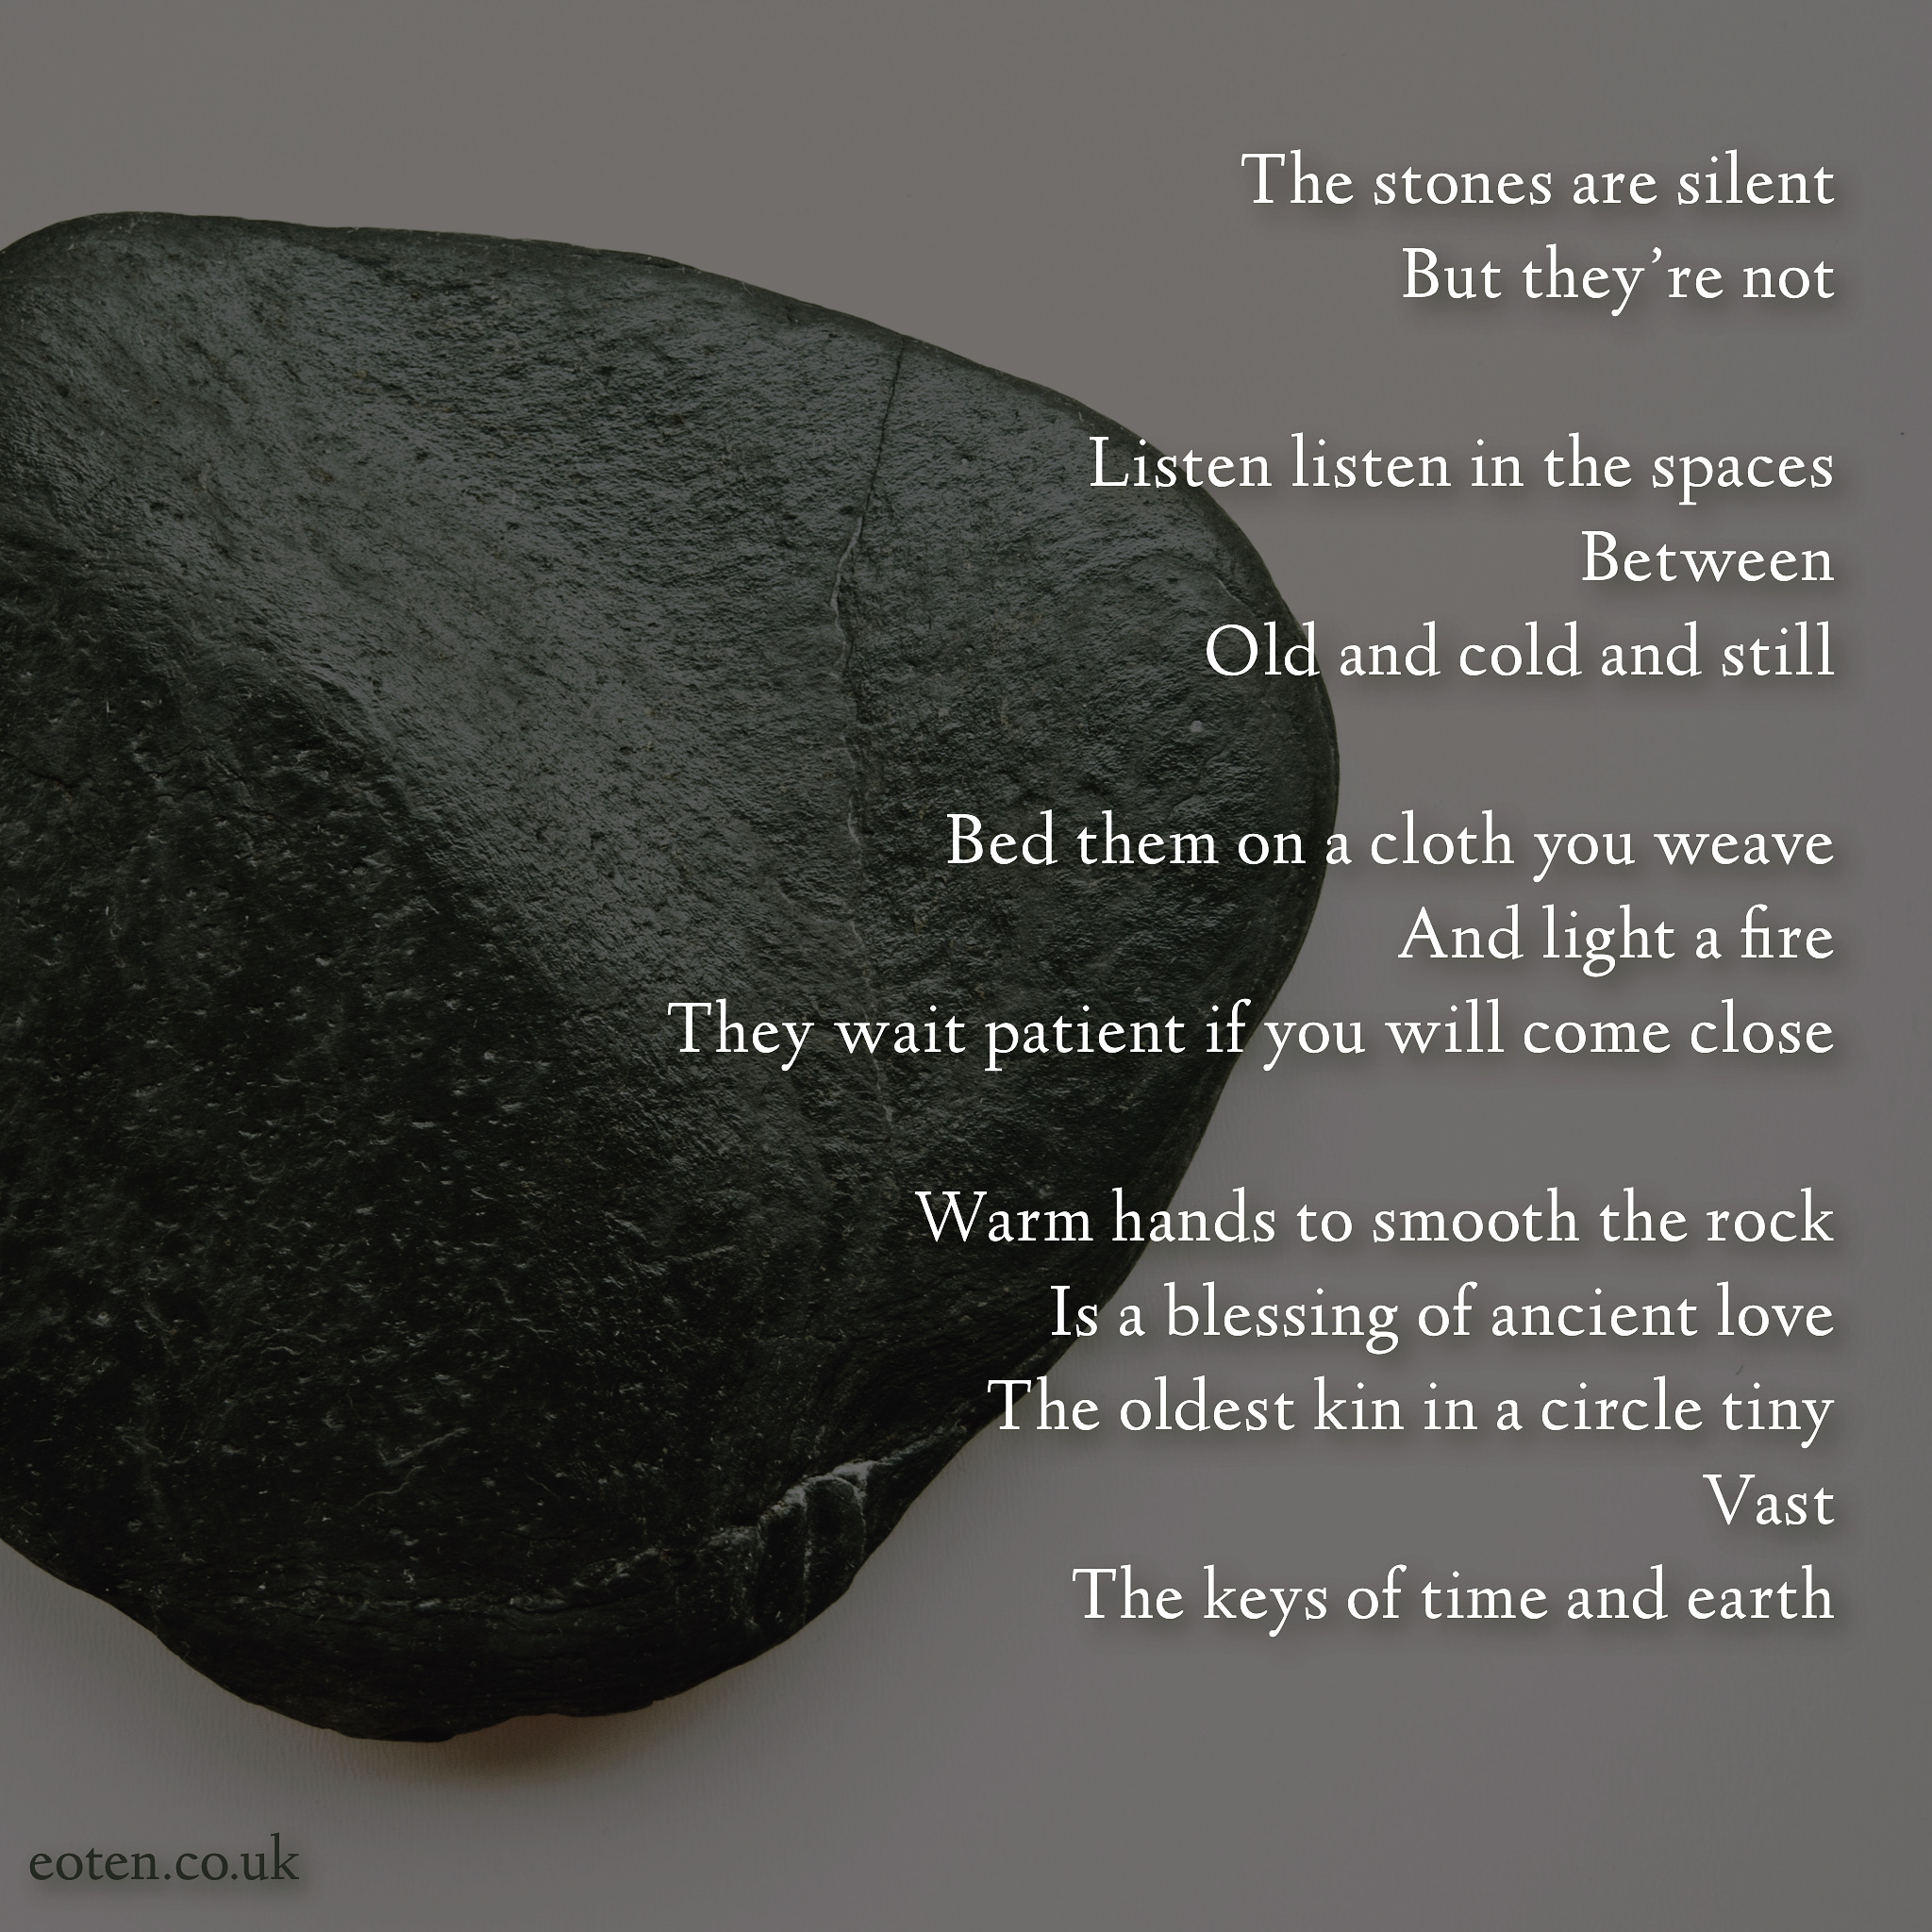 The stones are silent But they're not Listen listen in the spaces Between Old and cold and still Bed them on a cloth you weave And light a fire They wait patient if you will come close Warm hands to smooth the rock Is a blessing of ancient love The oldest kin in a circle tiny Vast The keys of time and earth